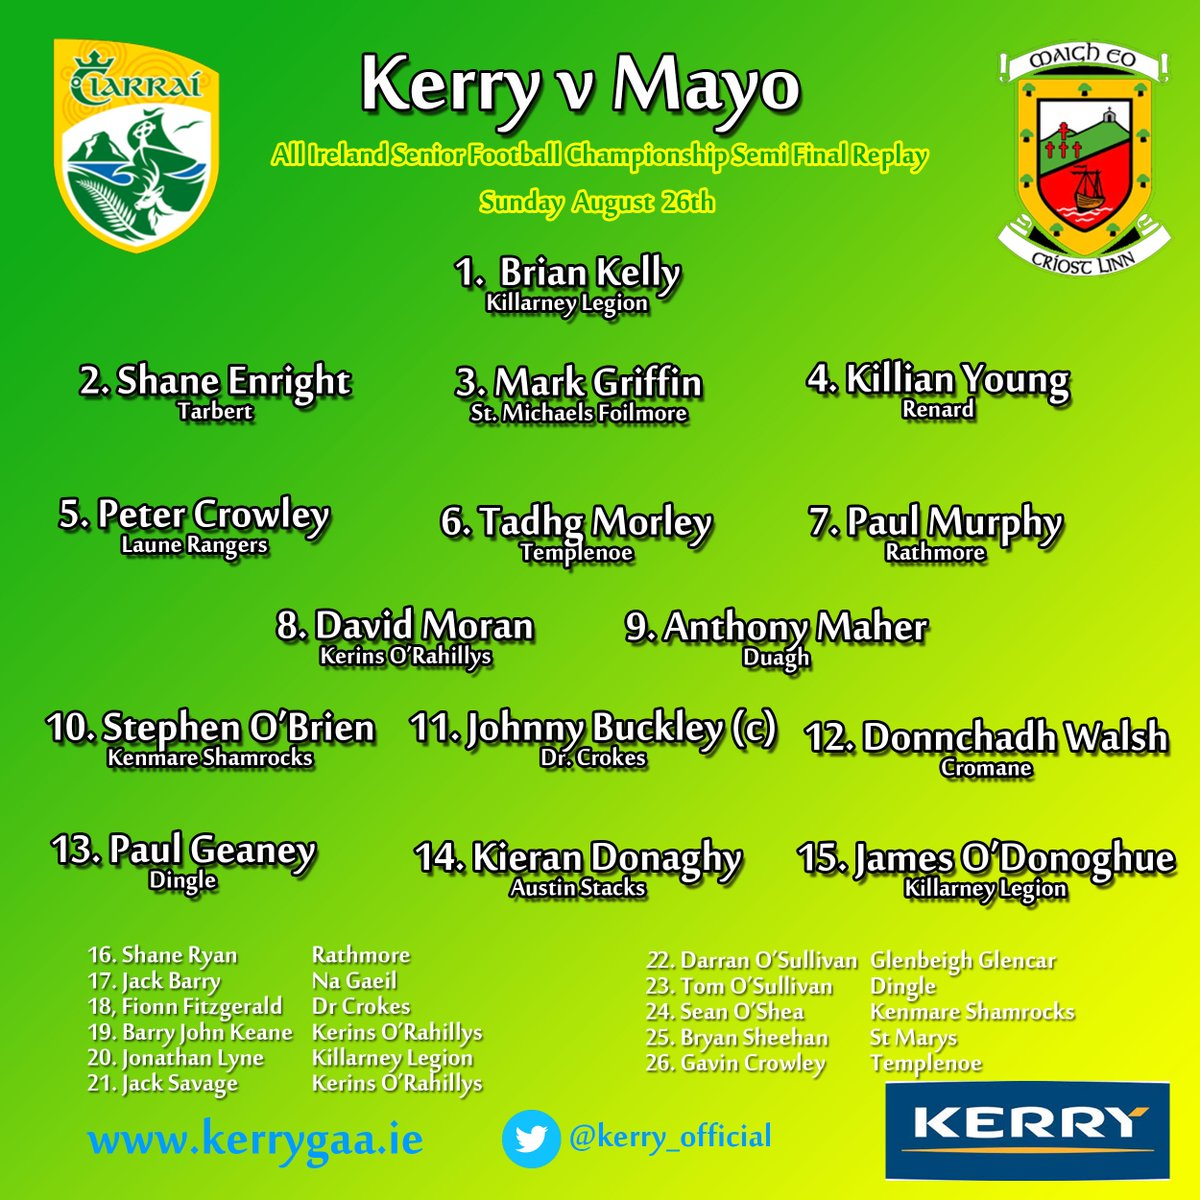 The Kerry Team to play Mayo in the All Ireland Senior Football Championship Semi Final Replay is as follows https://t.co/WVcO23DiGV